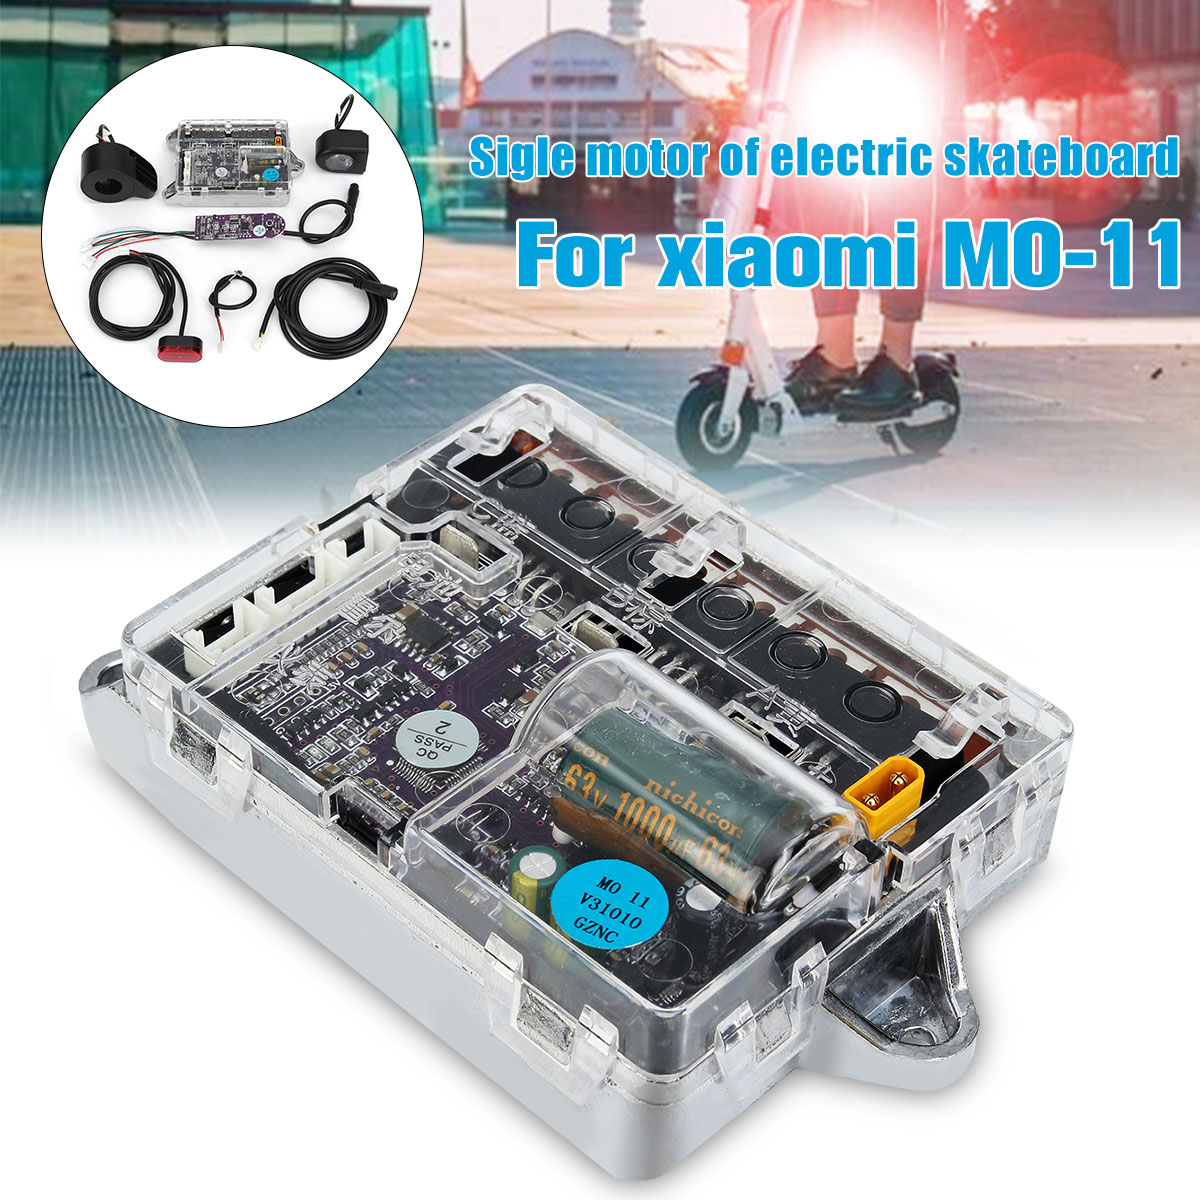 Skateboard Skate Scooter DIY Sigle Motor Of Electric Skateboard Controller Main Board ESC Substitute Kit For Xiaomi MO-11 M0-11